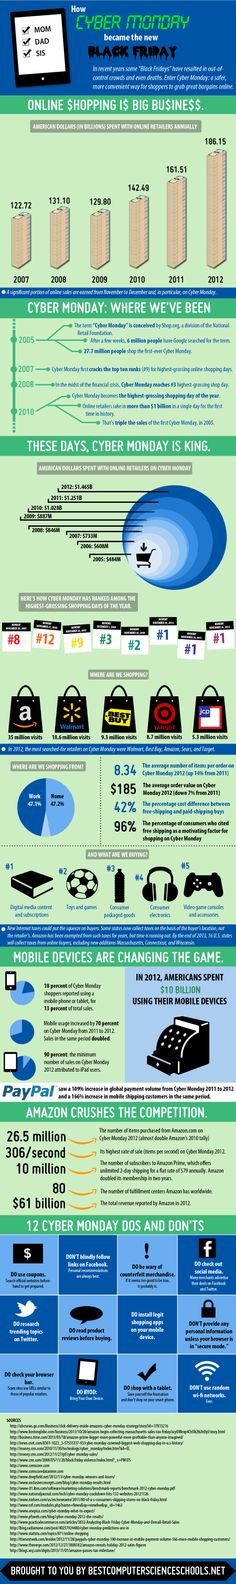 How Cyber Monday Became The New Black Friday [INFOGRAPHIC] #CyberMonday #BlackFriday